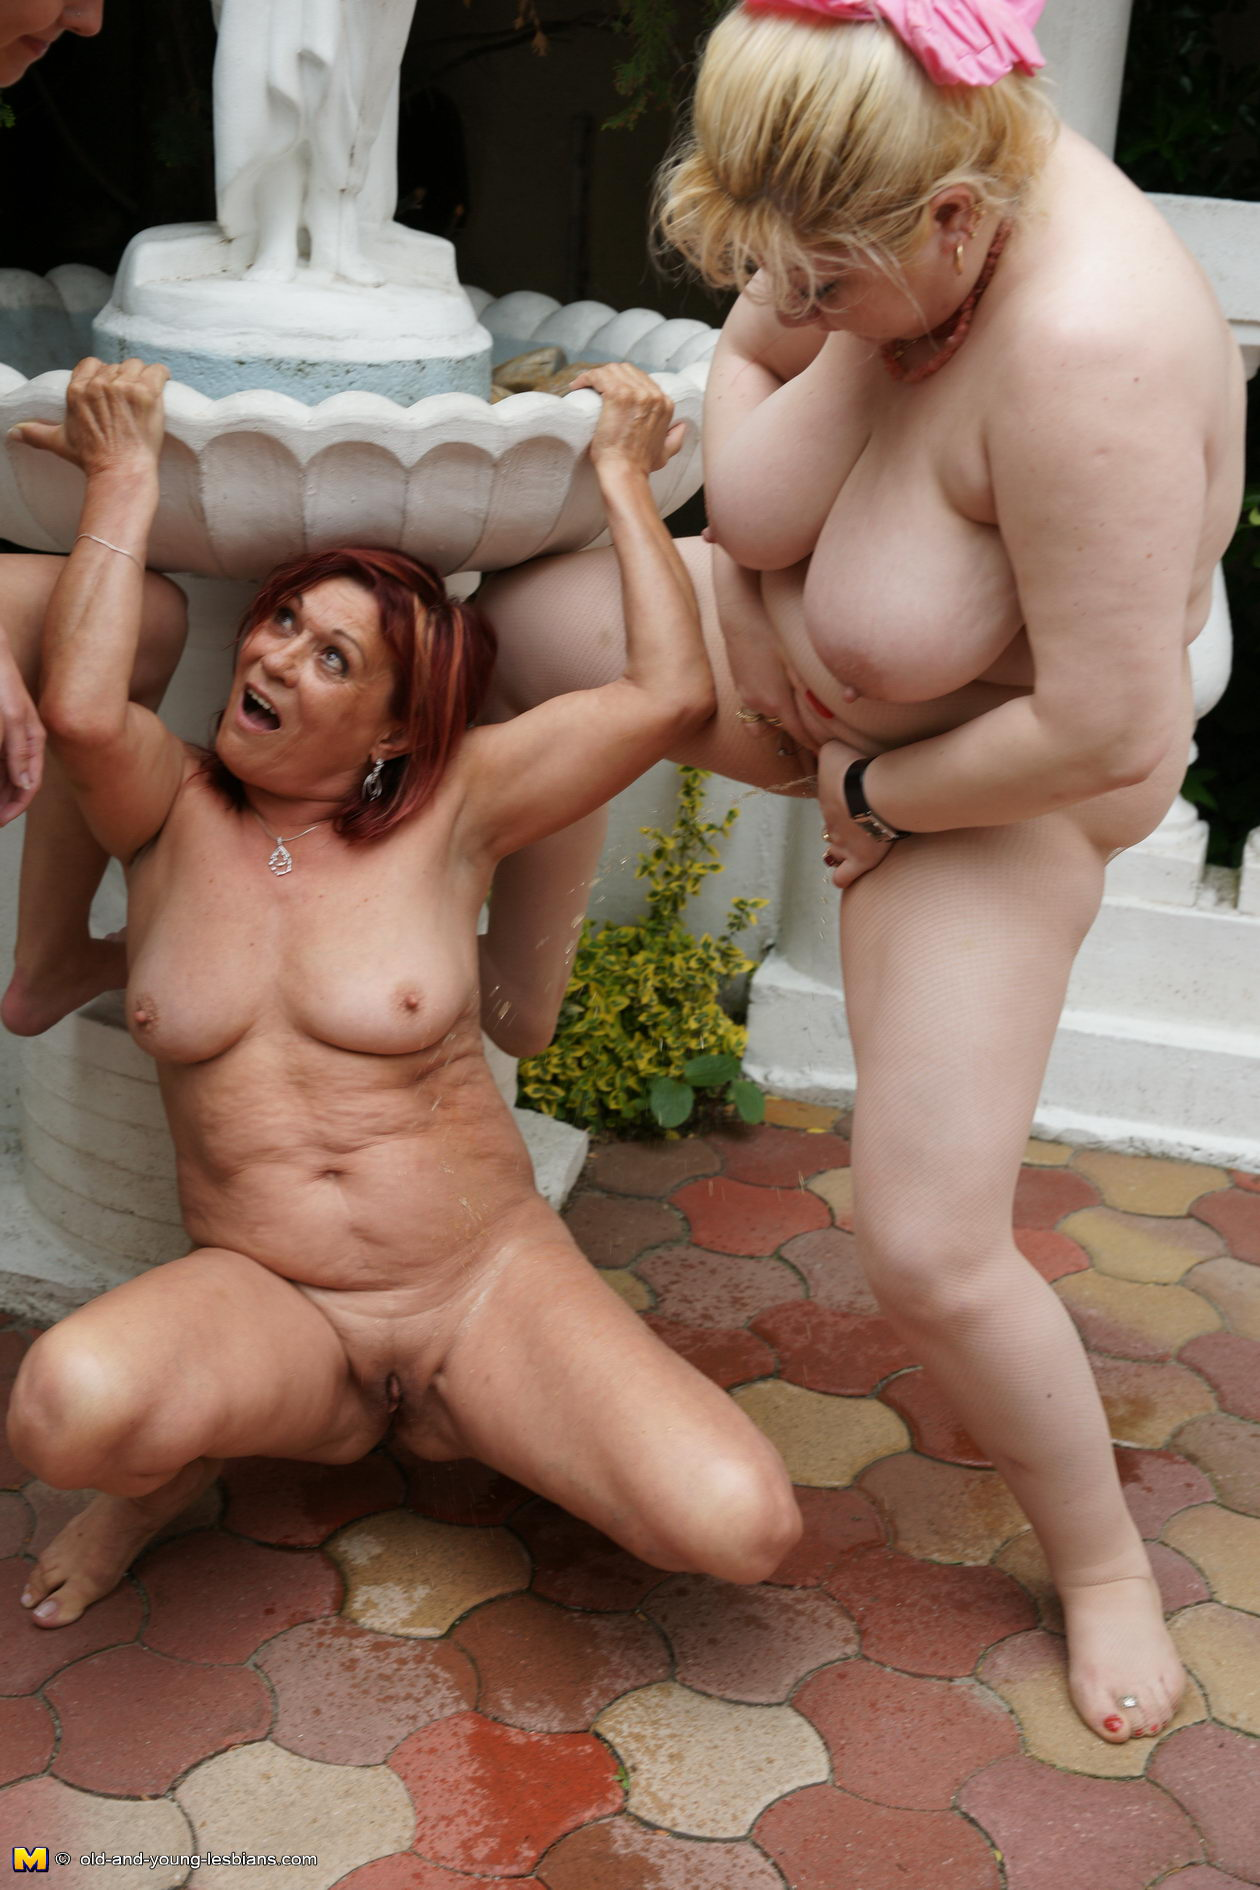 Two lesbians have a hot oil massage followed by scissoring brazzers